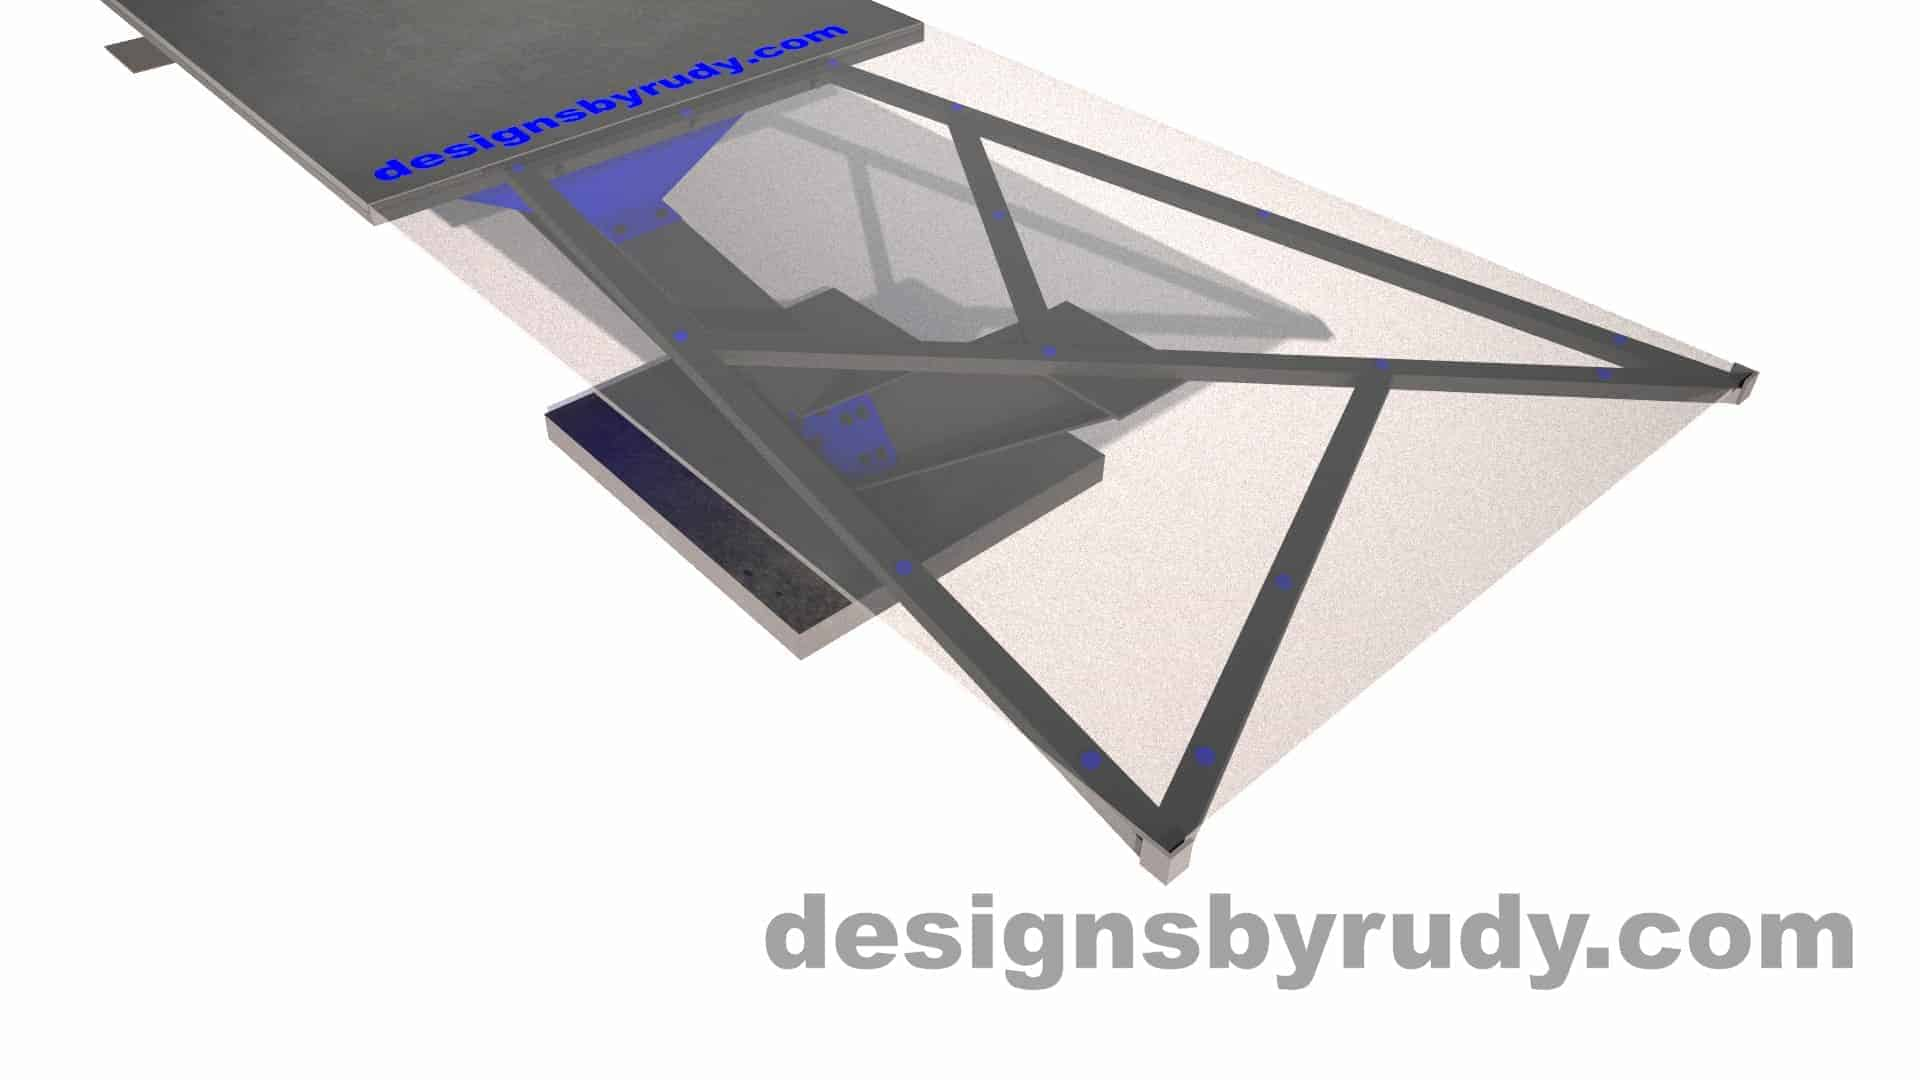 Concrete, steel, glass conference table modern design, partial angle view closeup 2